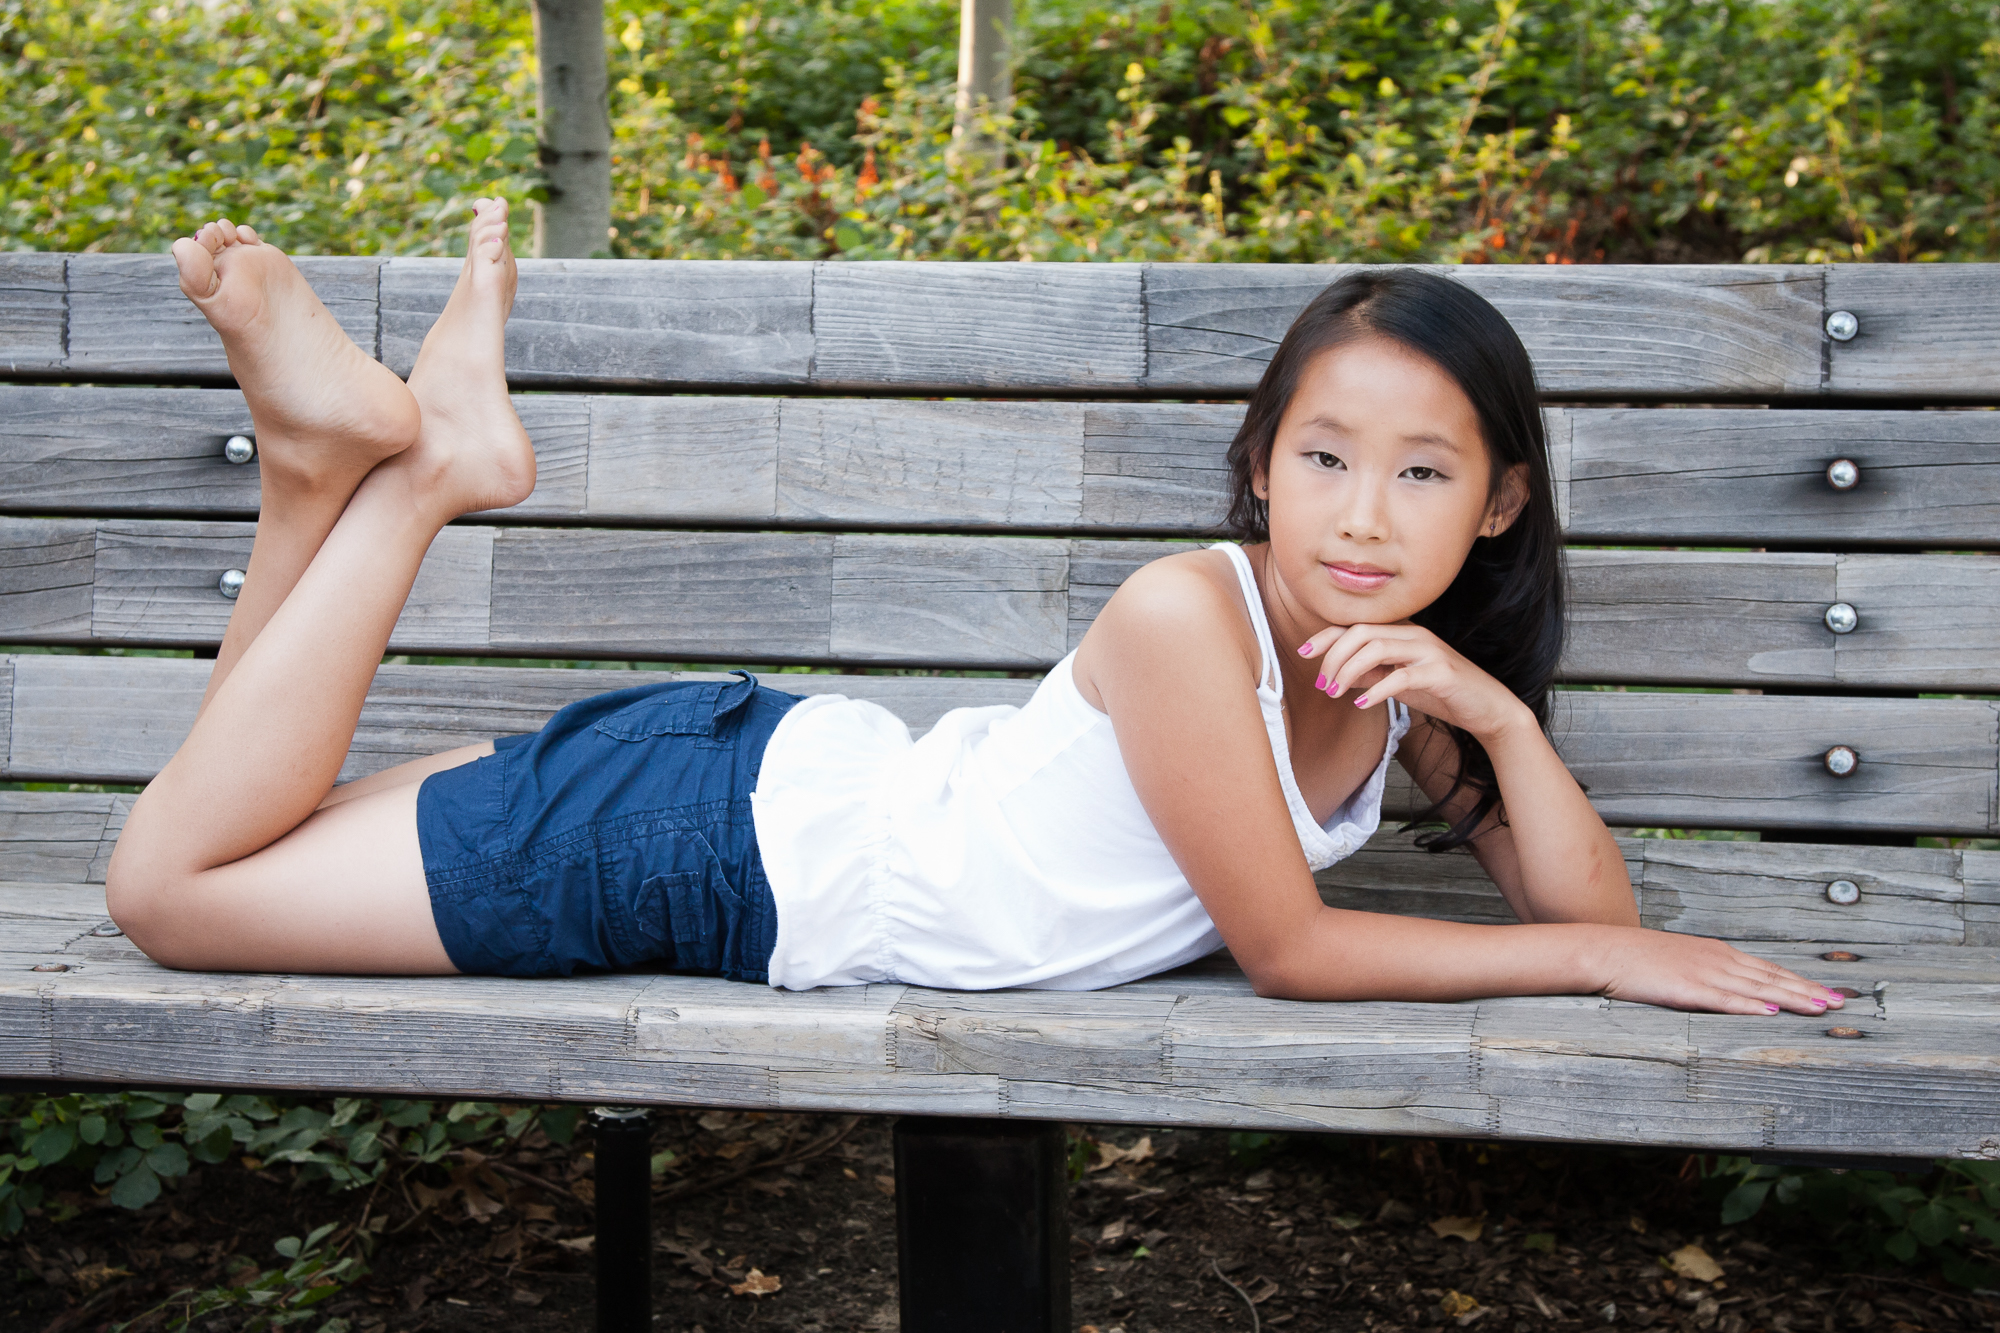 girl on a bench.jpg